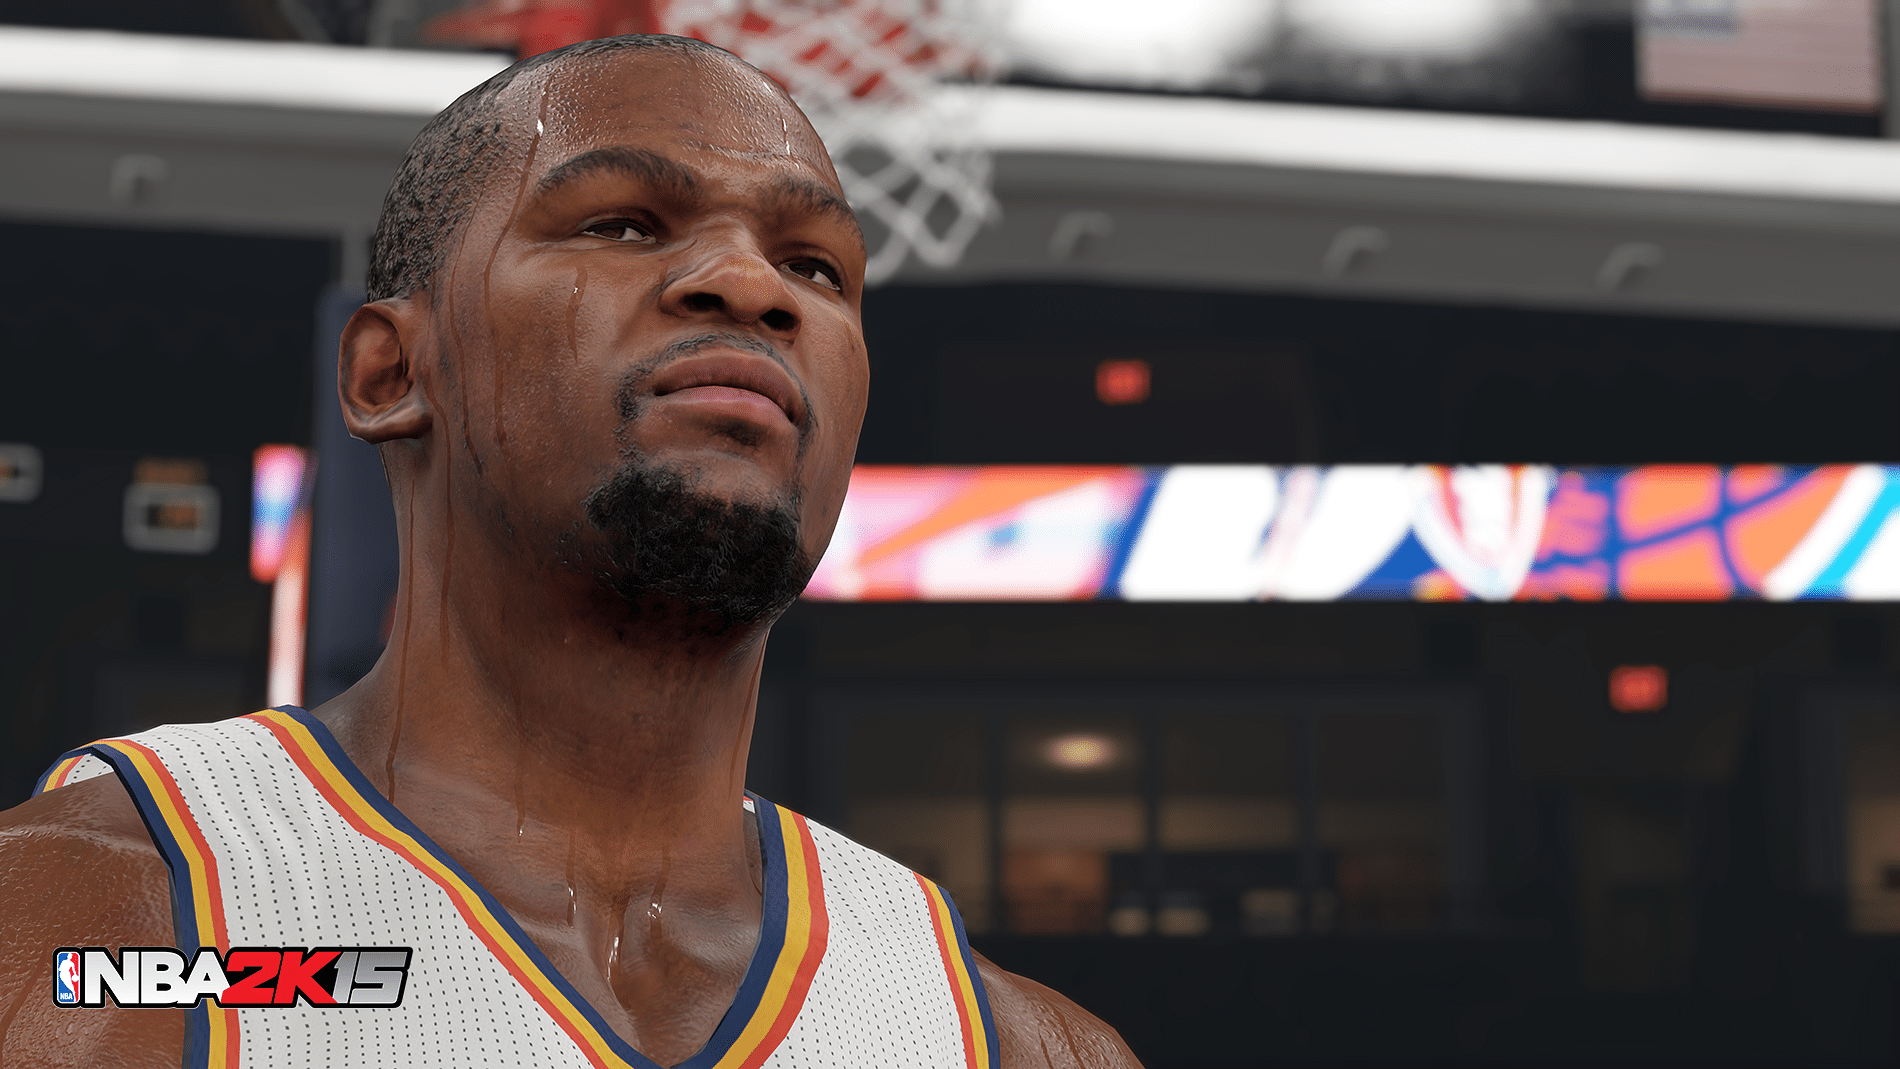 NBA 2K15 to be released for PC